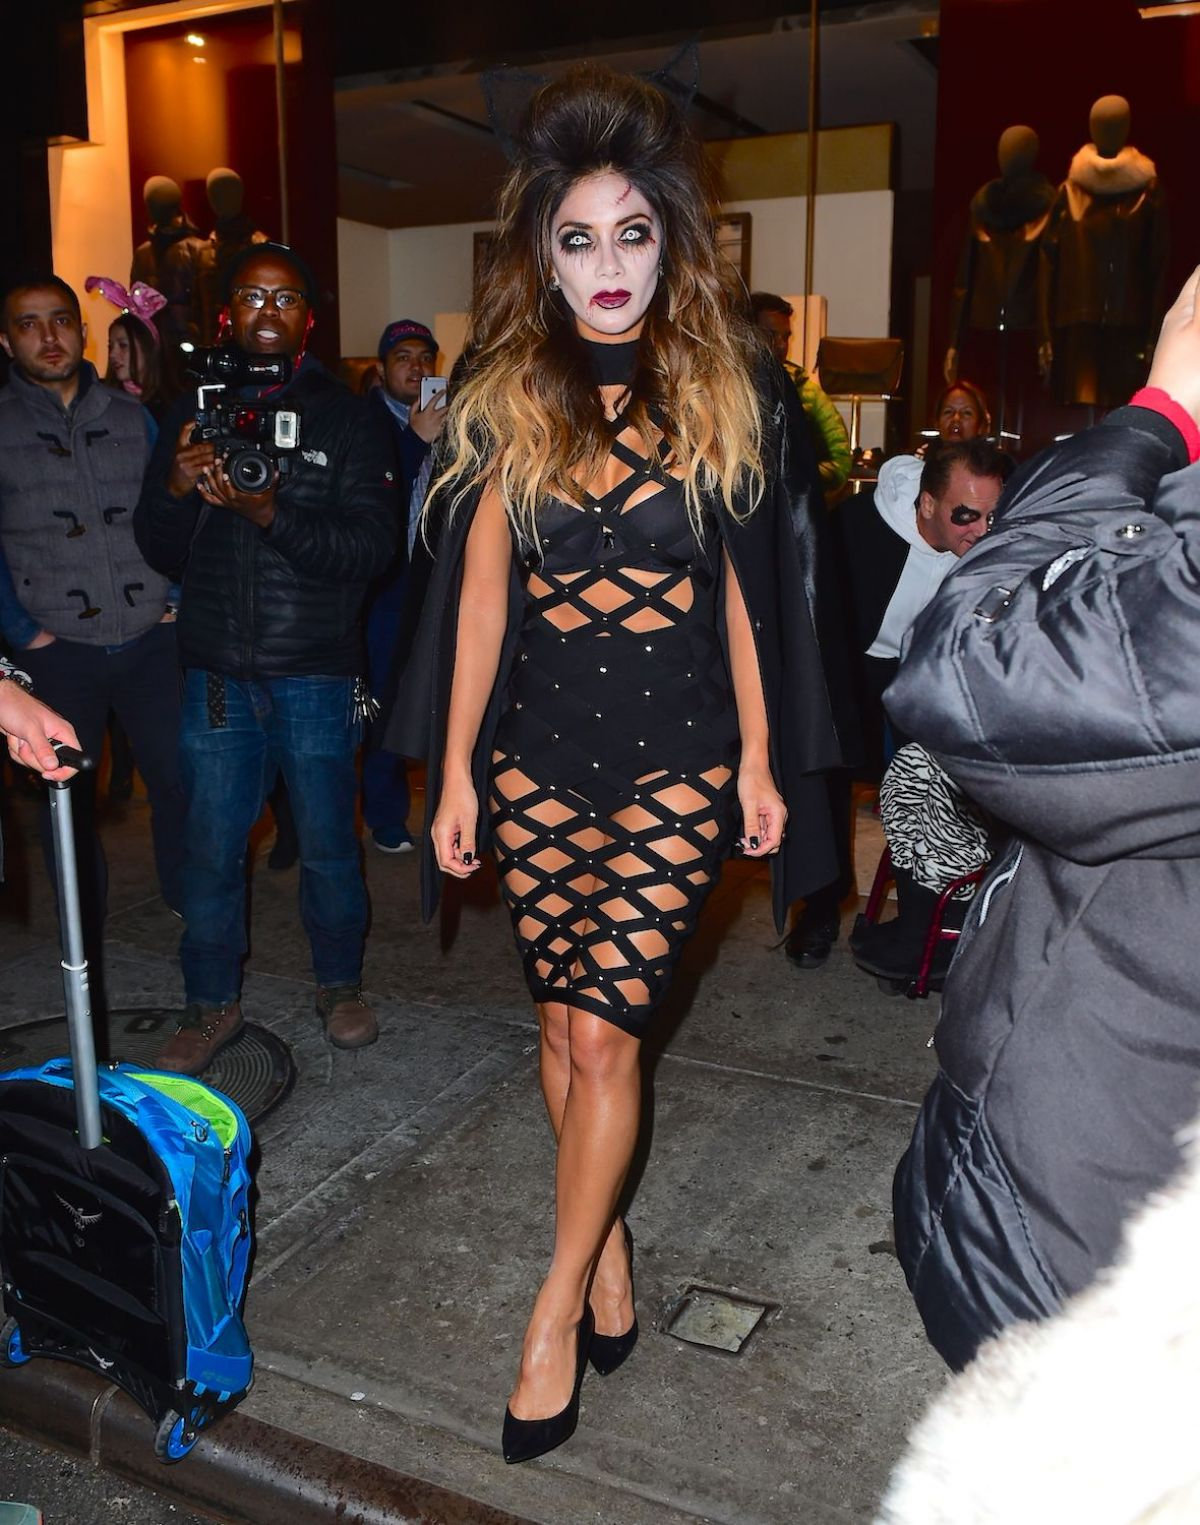 Nicole Scherzinger Halloween Costume.Nicole Scherzinger At Heidi Klum Halloween Party In New York 10 31